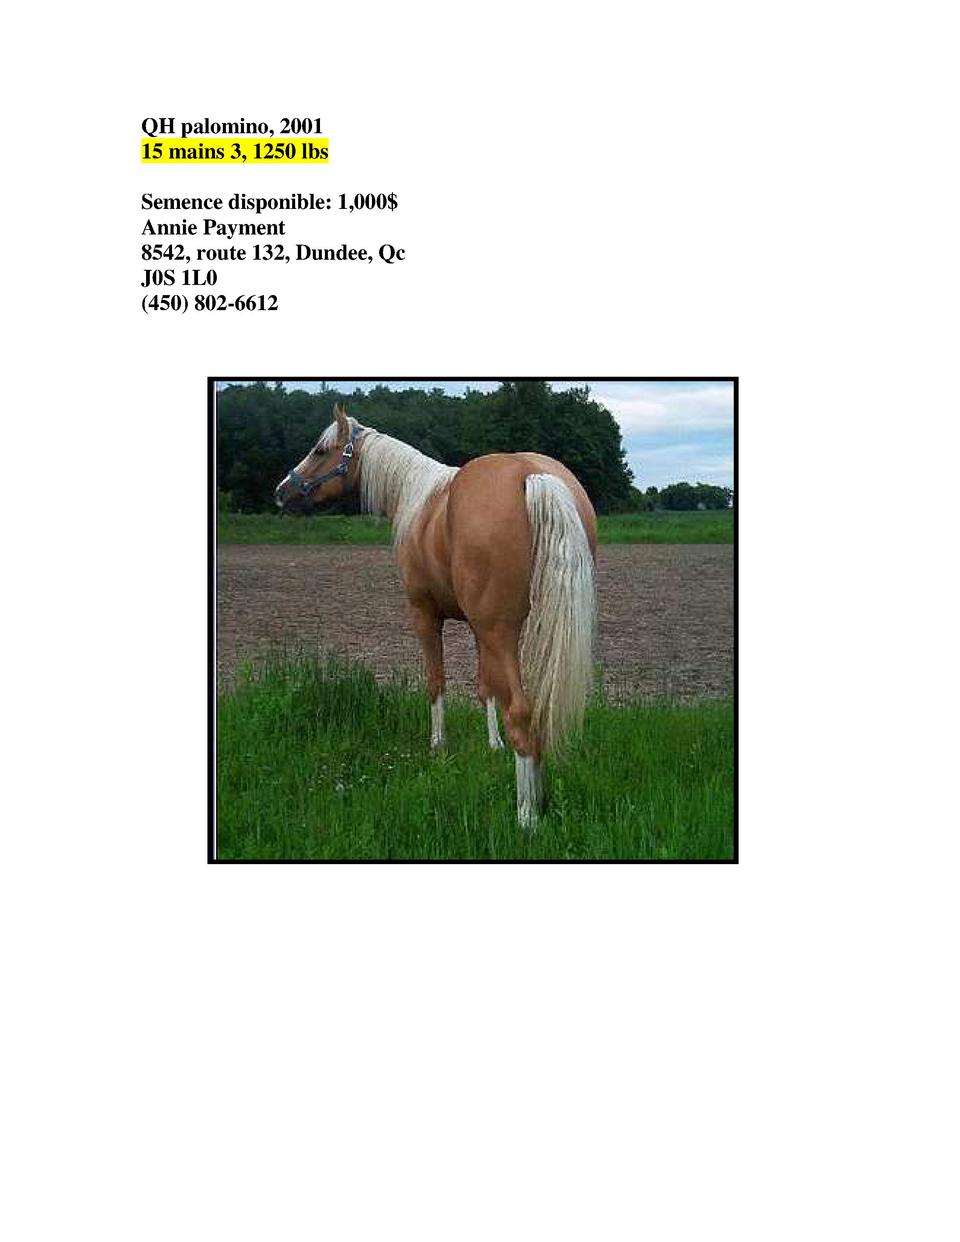 QH palomino, 2001 15 mains 3, 1250 lbs Semence disponible  1,000  Annie Payment 8542, route 132, Dundee, Qc J0S 1L0  450  ...